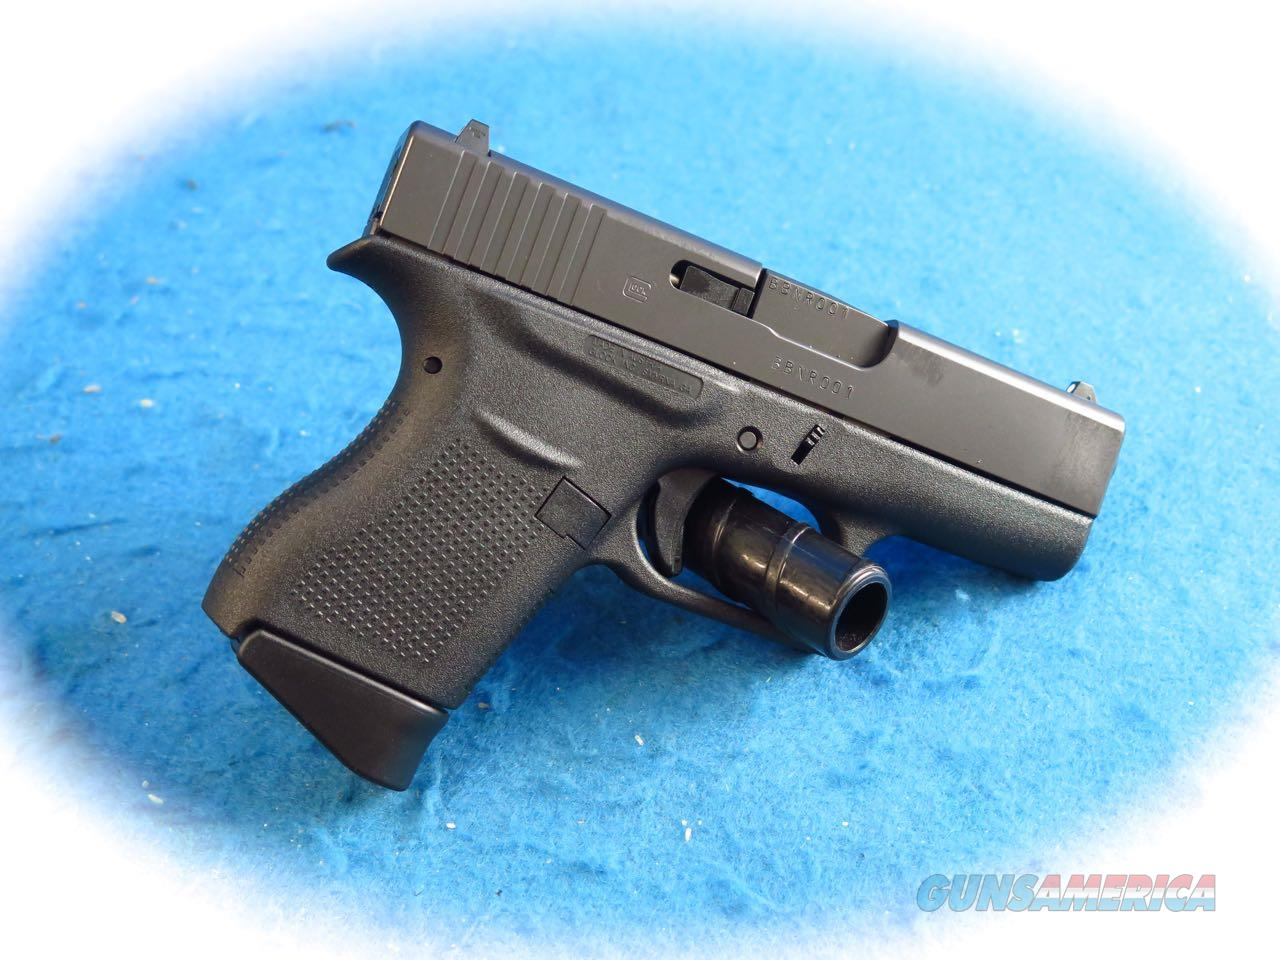 Glock Model 43 9mm Semi Auto Pistol  **New**  Guns > Pistols > Glock Pistols > 43